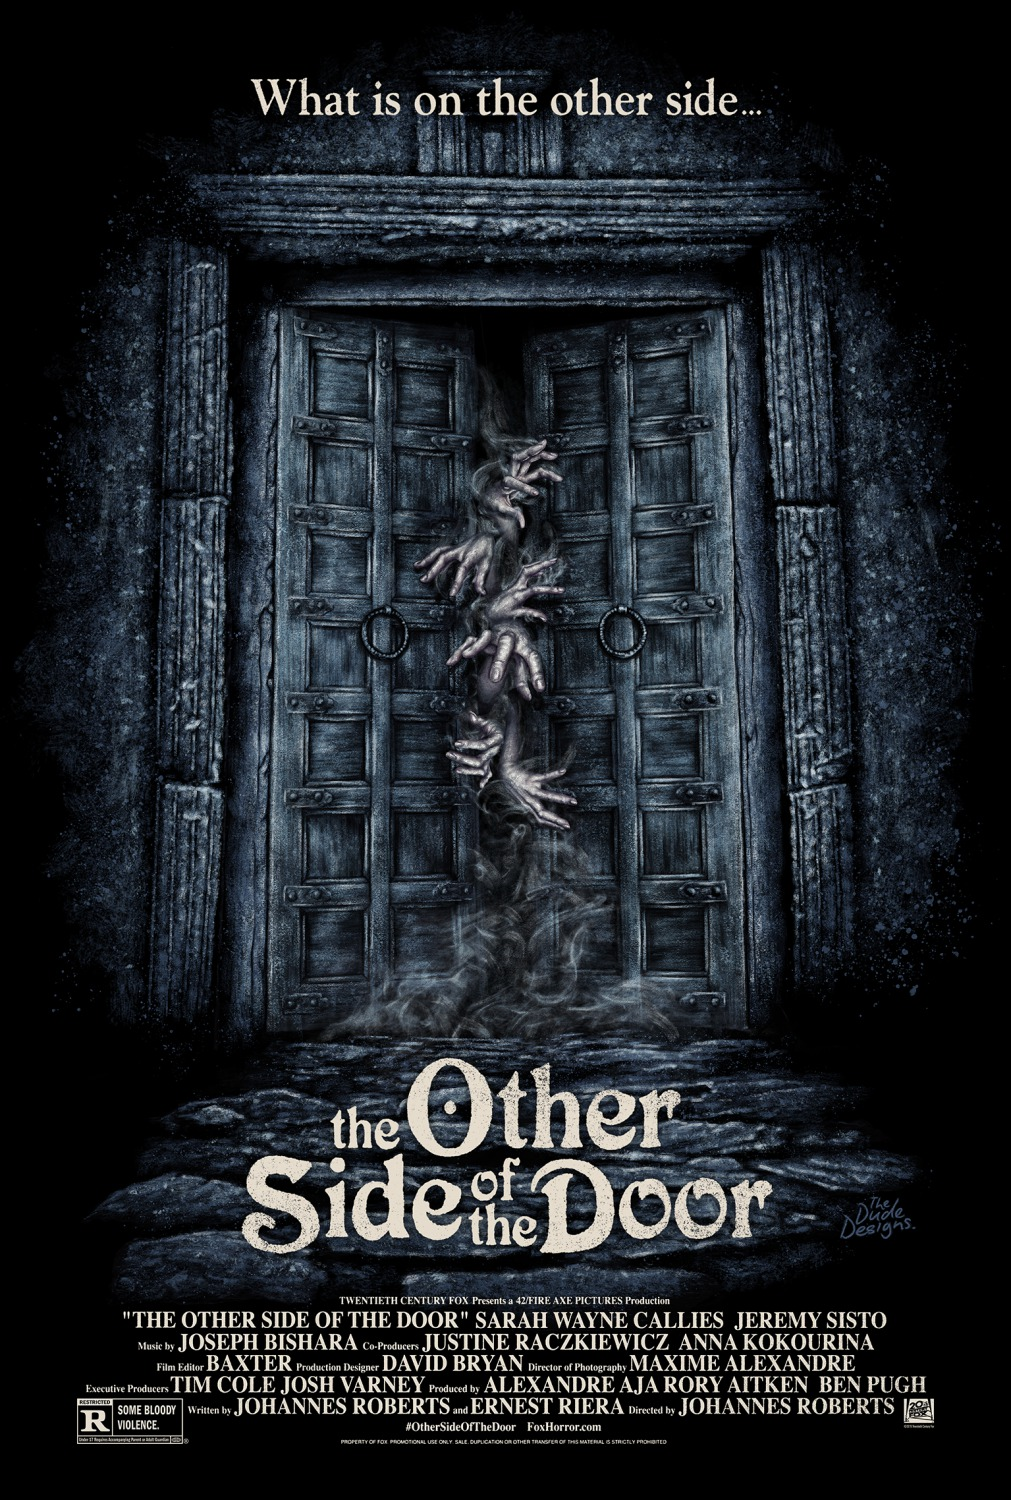 The Other Side of the Door poster 2 & The Other Side of the Door poster 2 - blackfilm.com/read   blackfilm ...